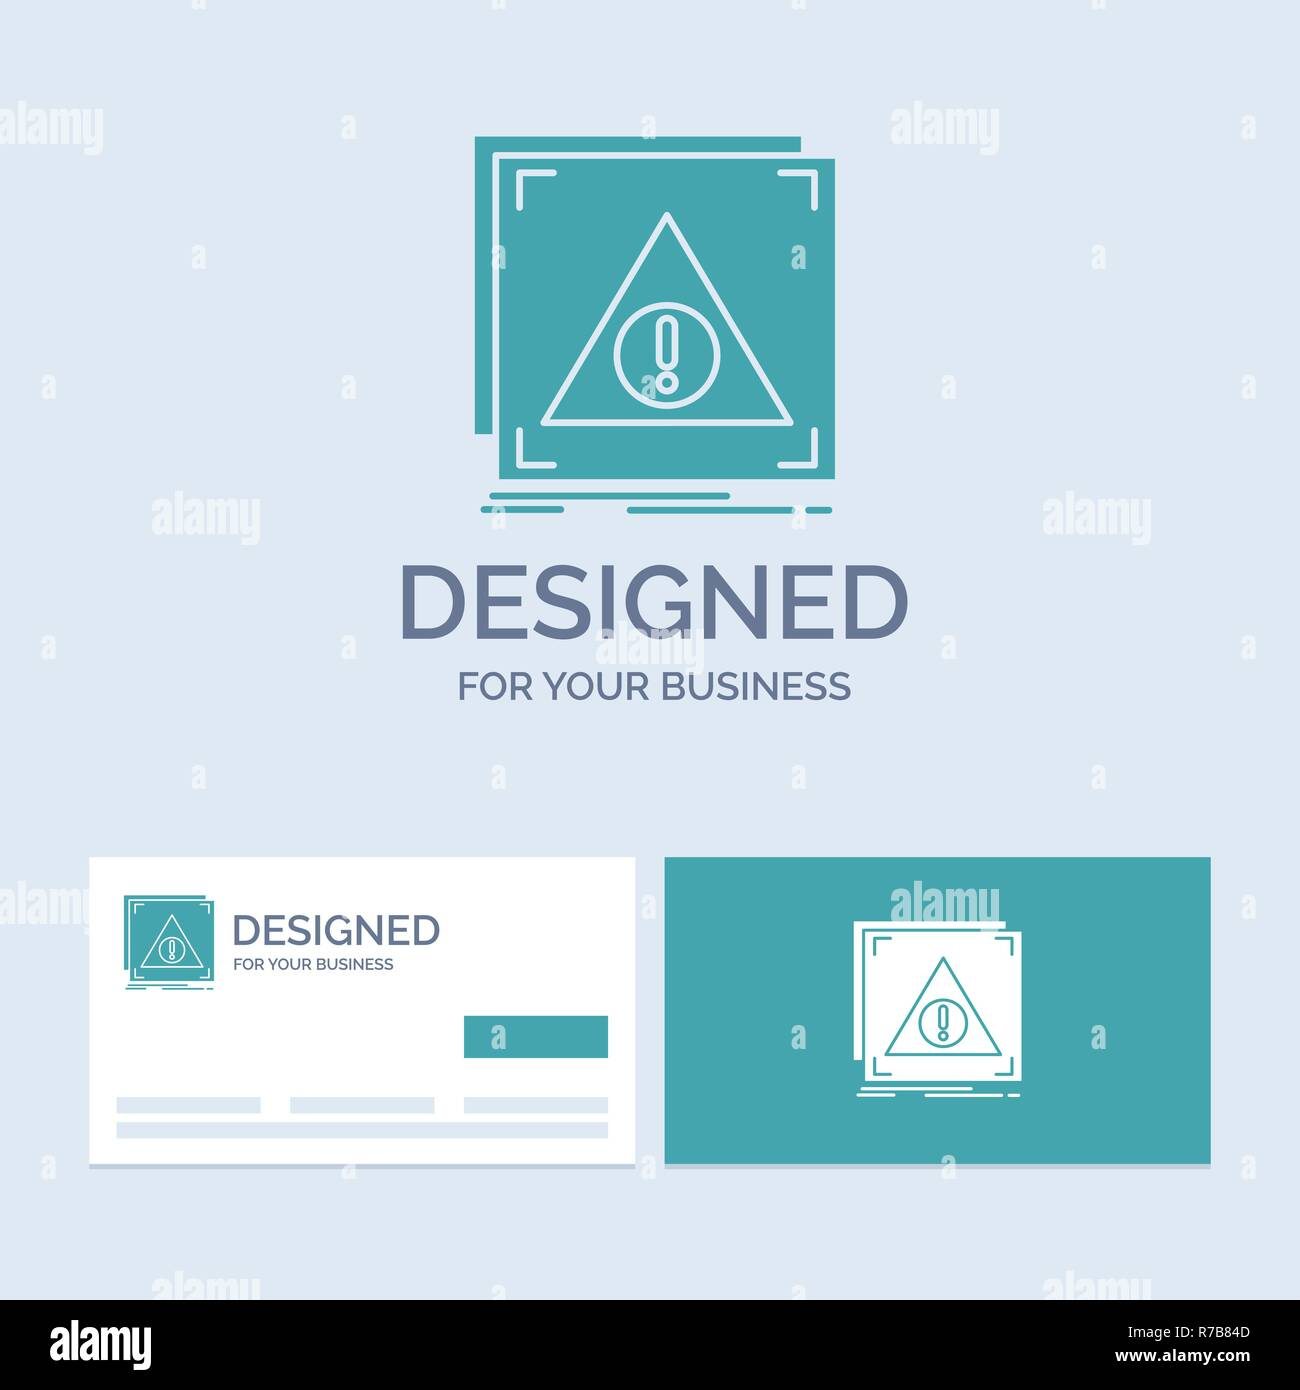 Error, Application, Denied, server, alert Business Logo Glyph Icon Symbol for your business. Turquoise Business Cards with Brand logo template. - Stock Image